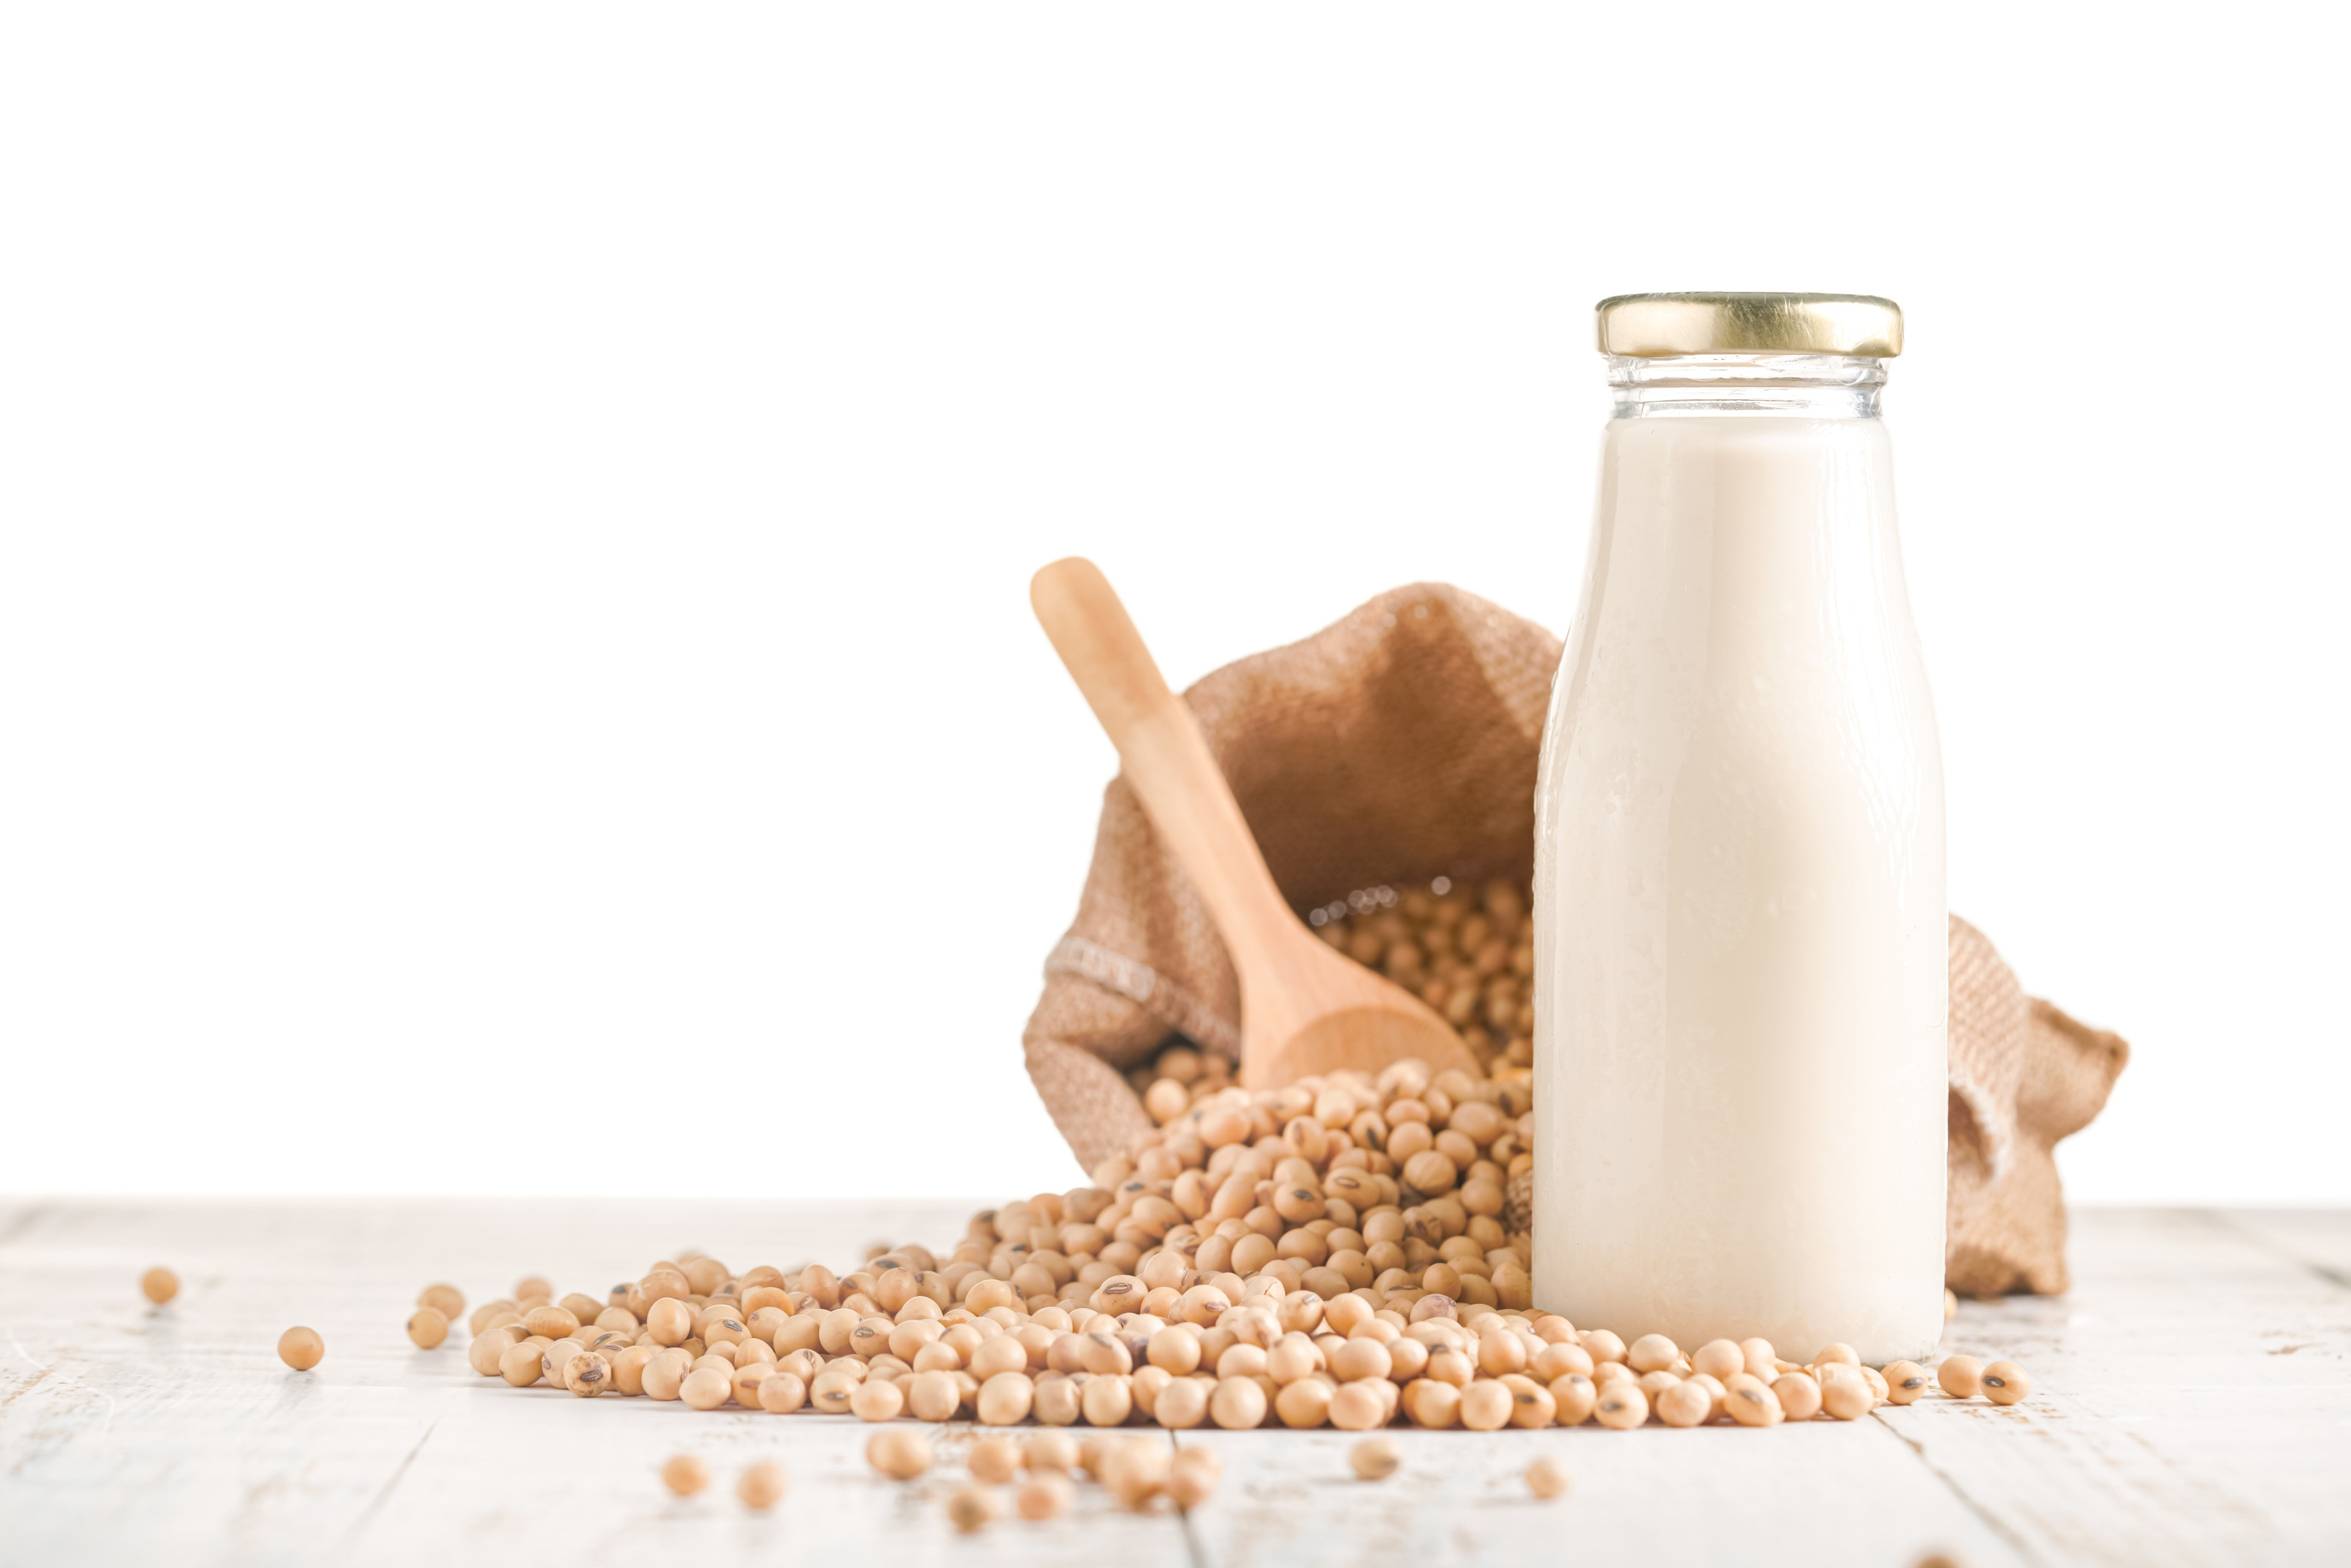 Soy beans and bottle of soy milk on white background